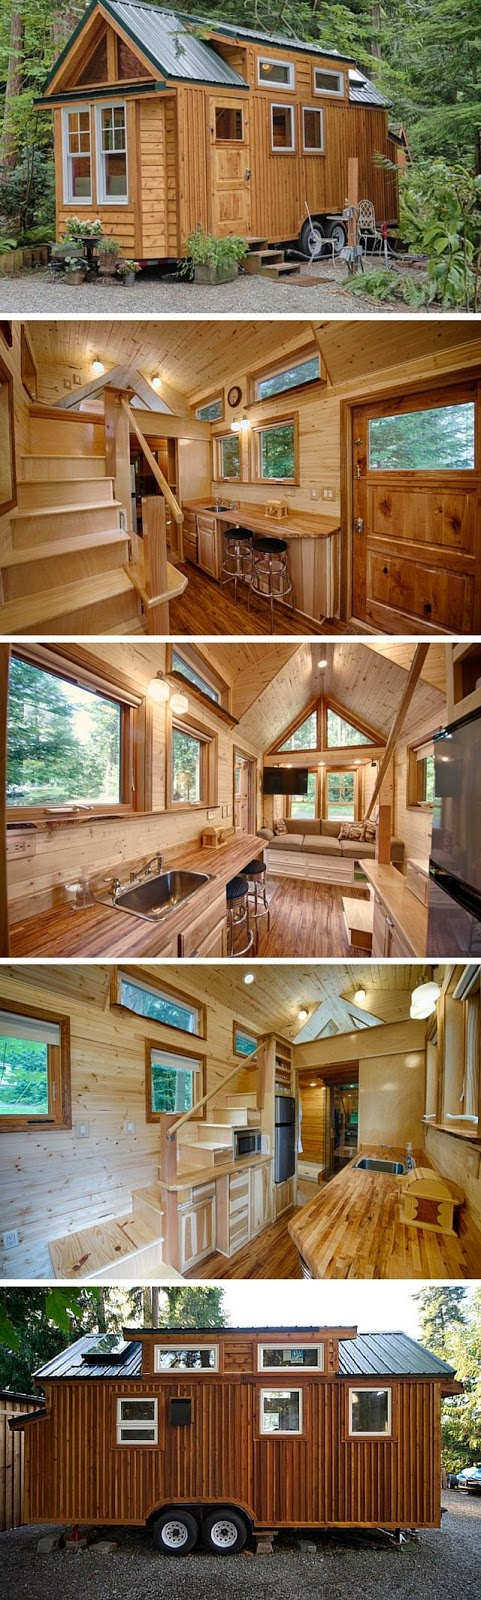 Tiny Homes Cabin Kit